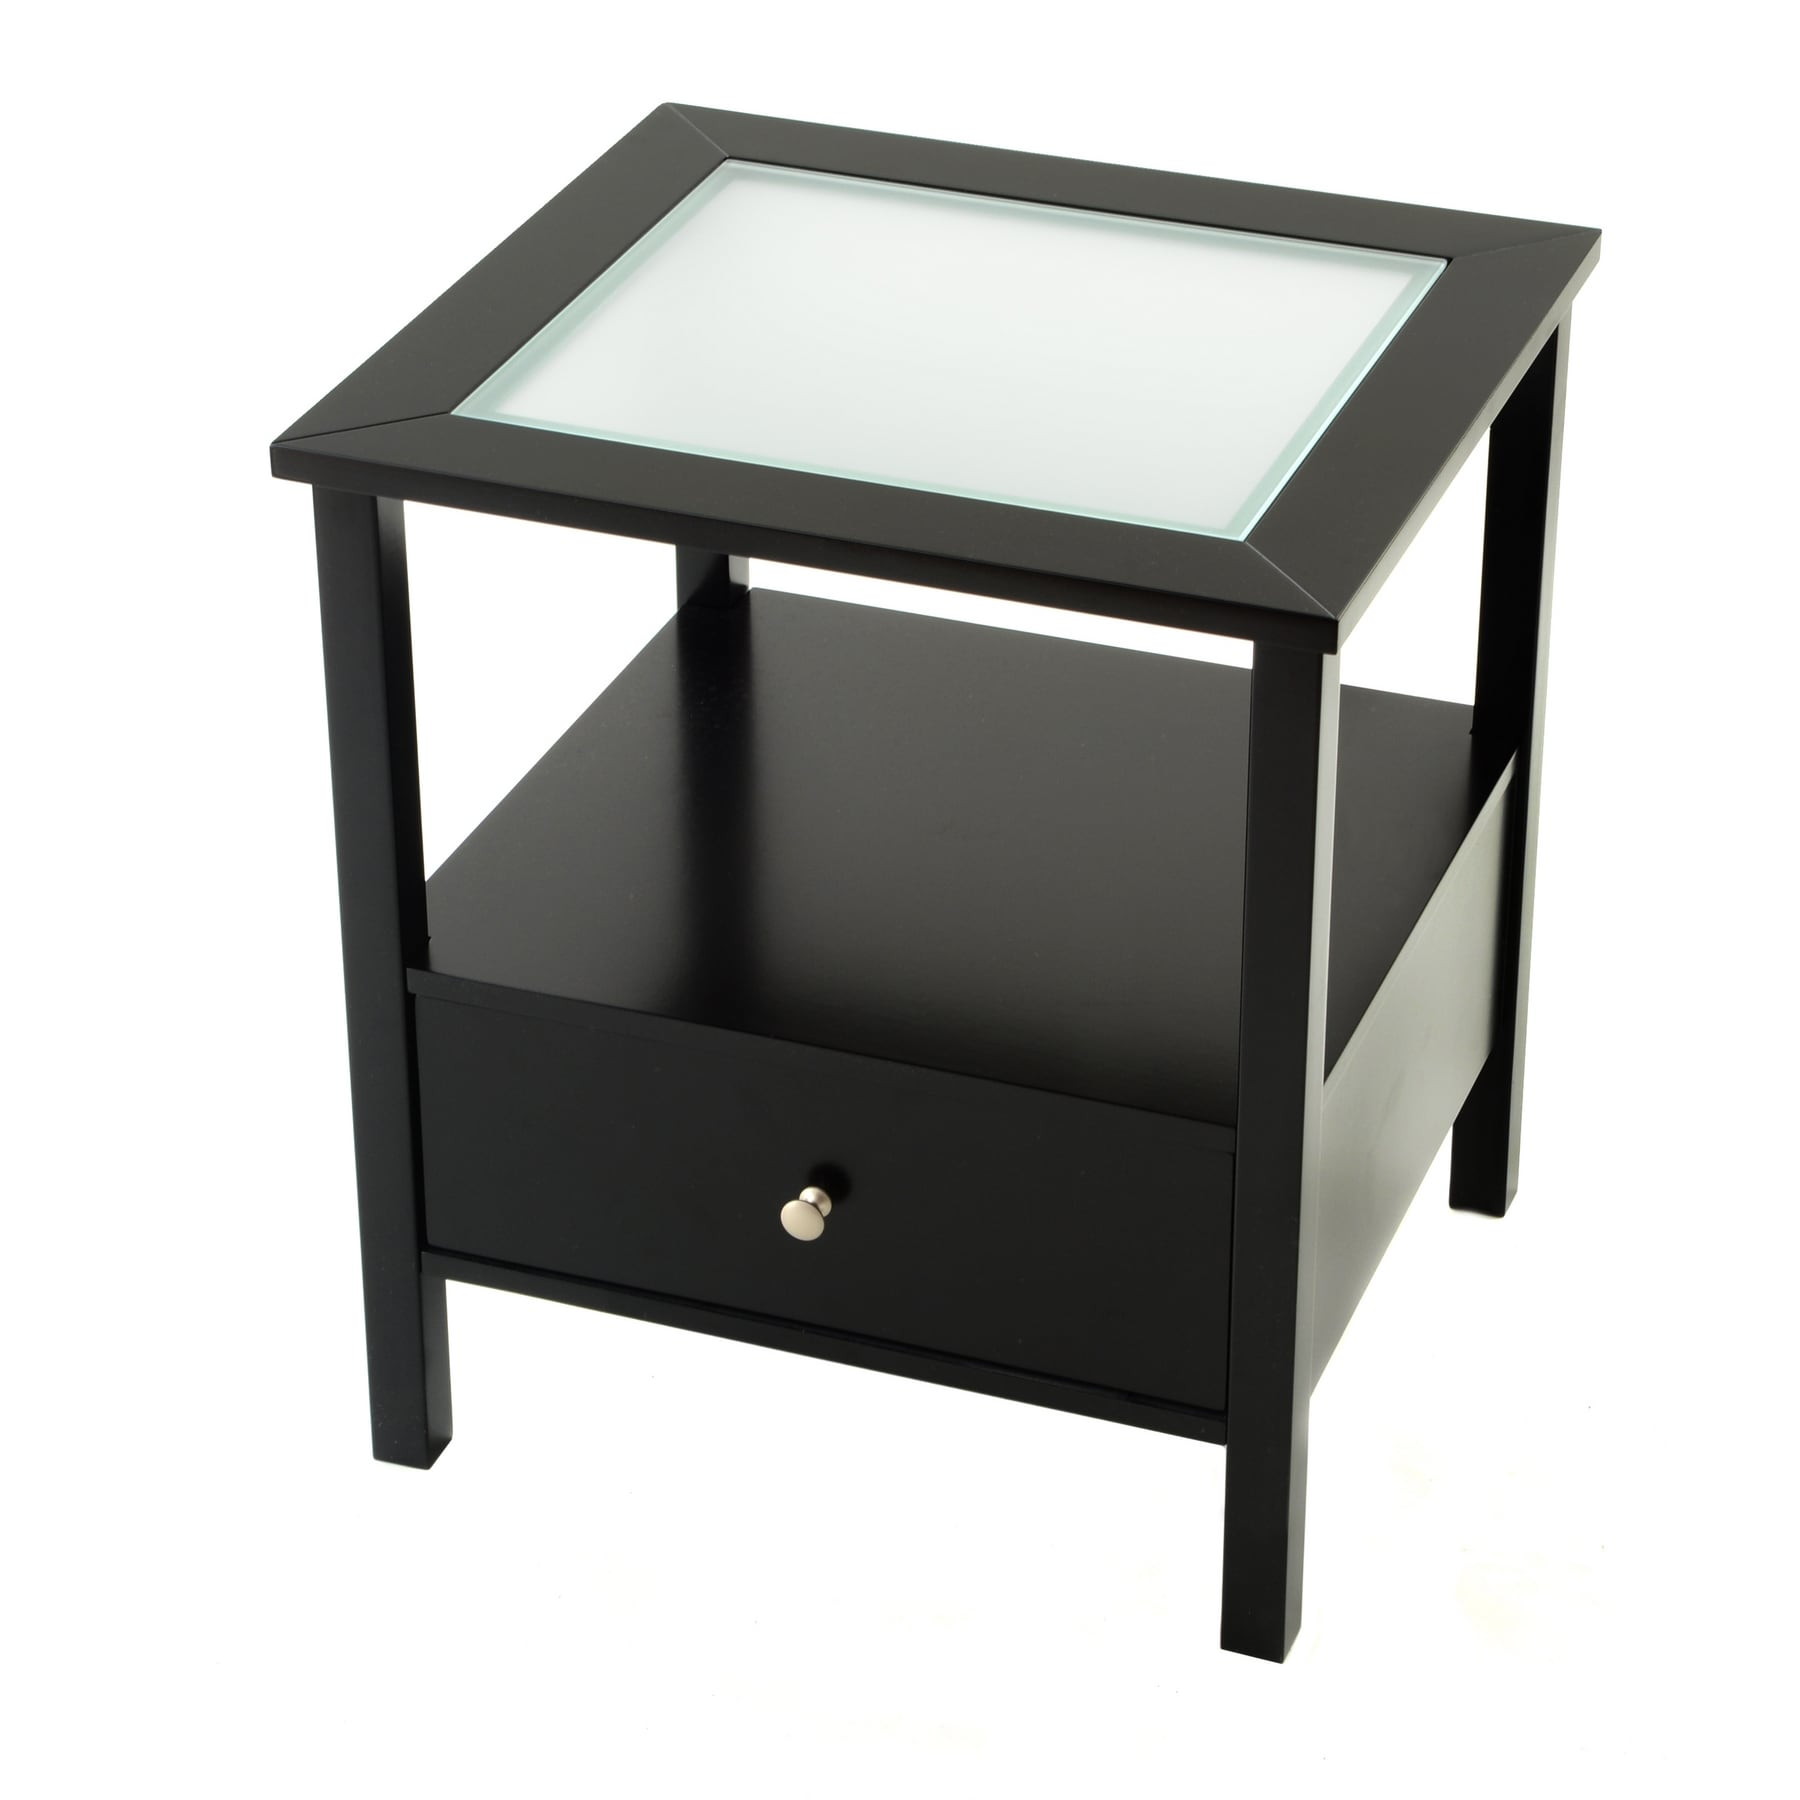 Bianco Collection Black Glass Top End Table Free  : Bianco Collection Black Glass Top End Table P14697598 from www.overstock.com size 1800 x 1800 jpeg 66kB